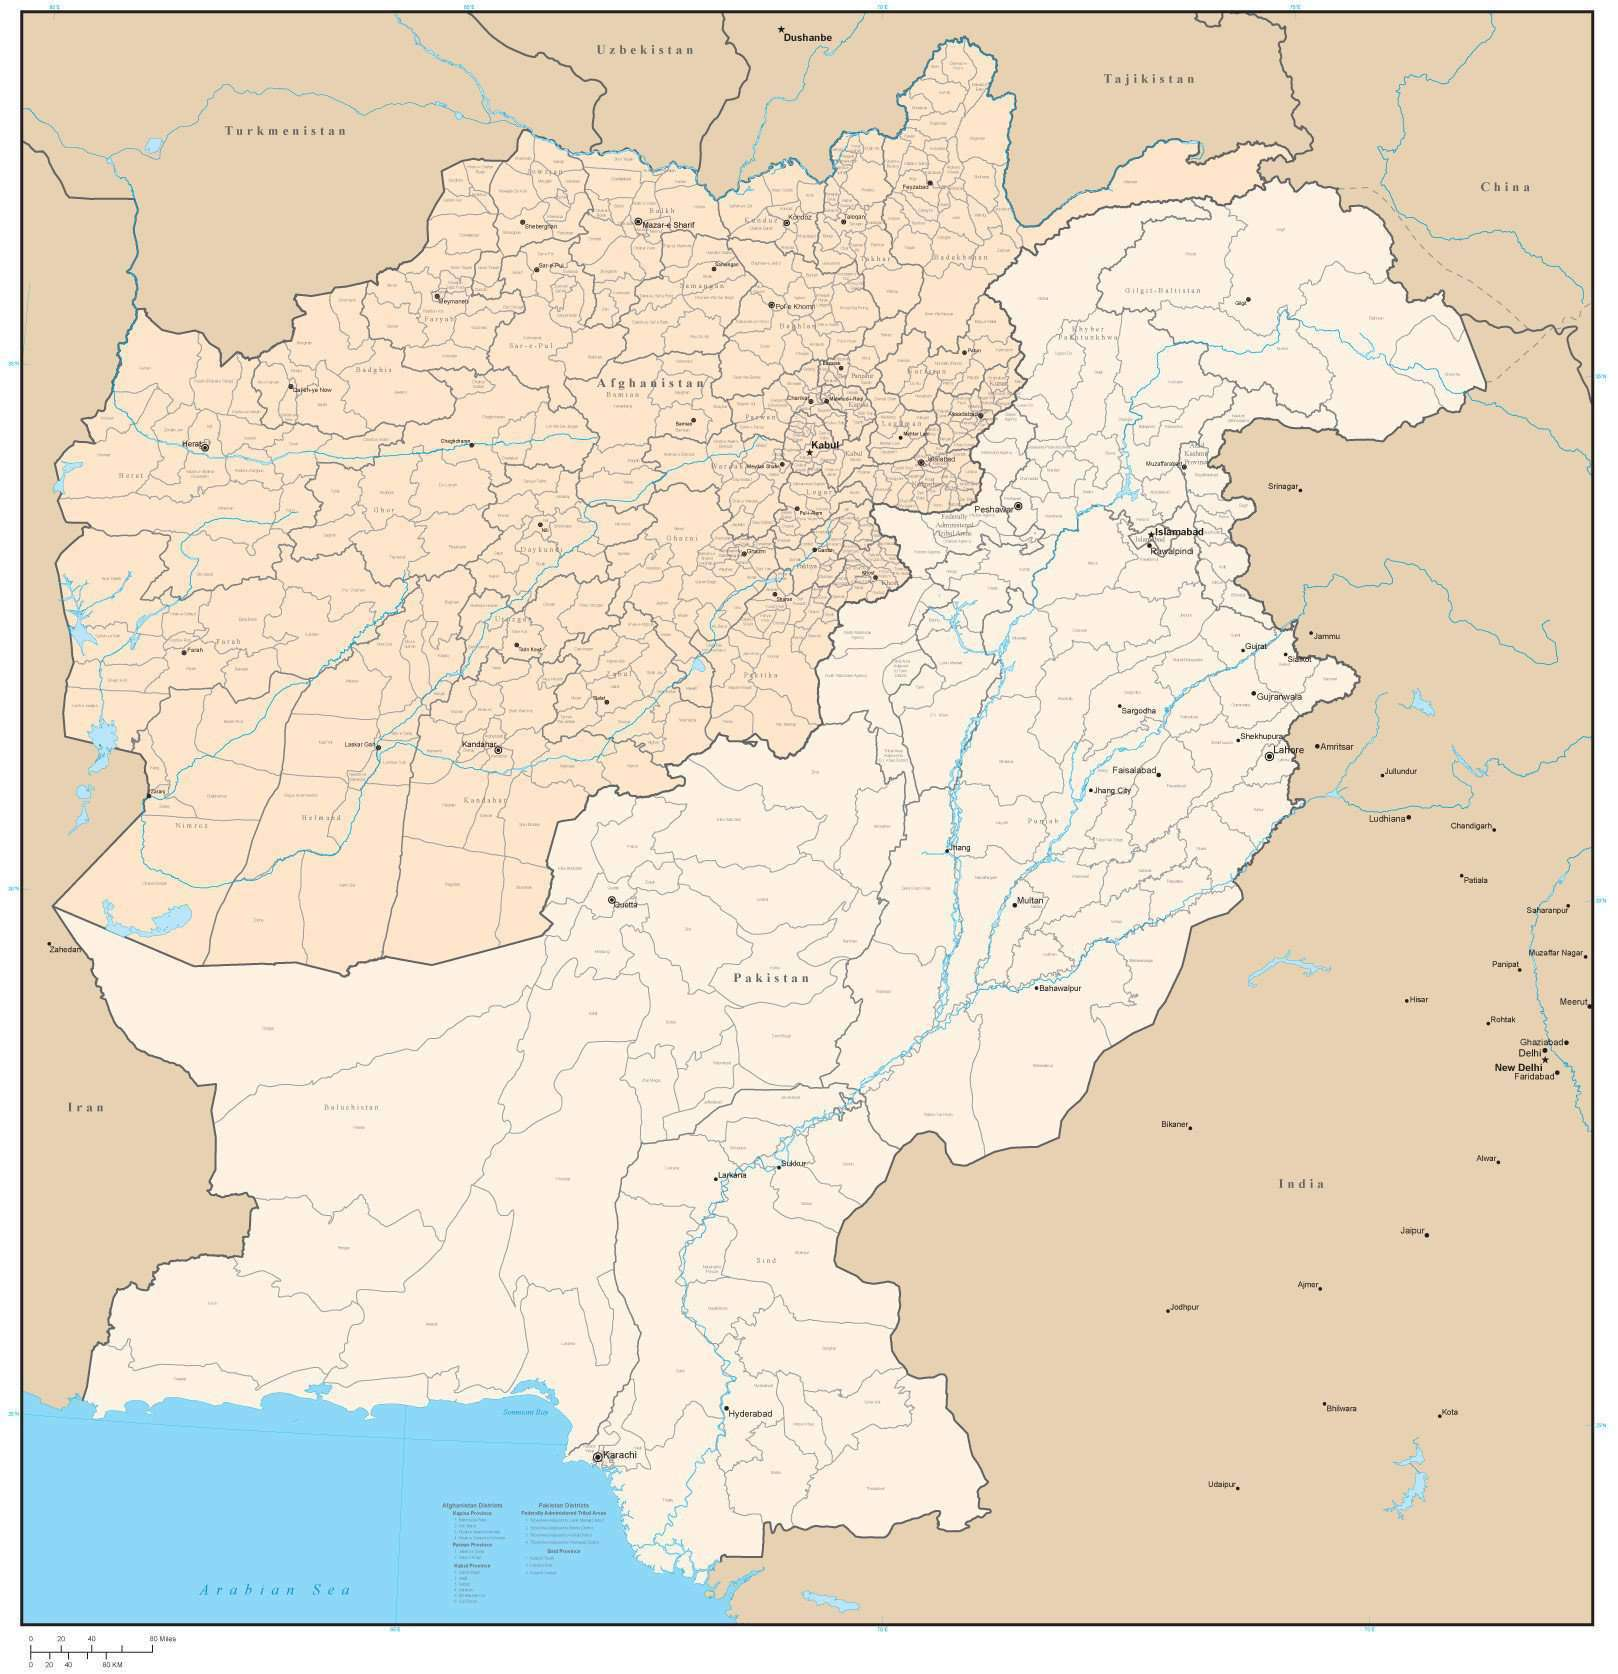 Afghanistan Pakistan With Provinces Districts Map 22 Inches By 24 Inches